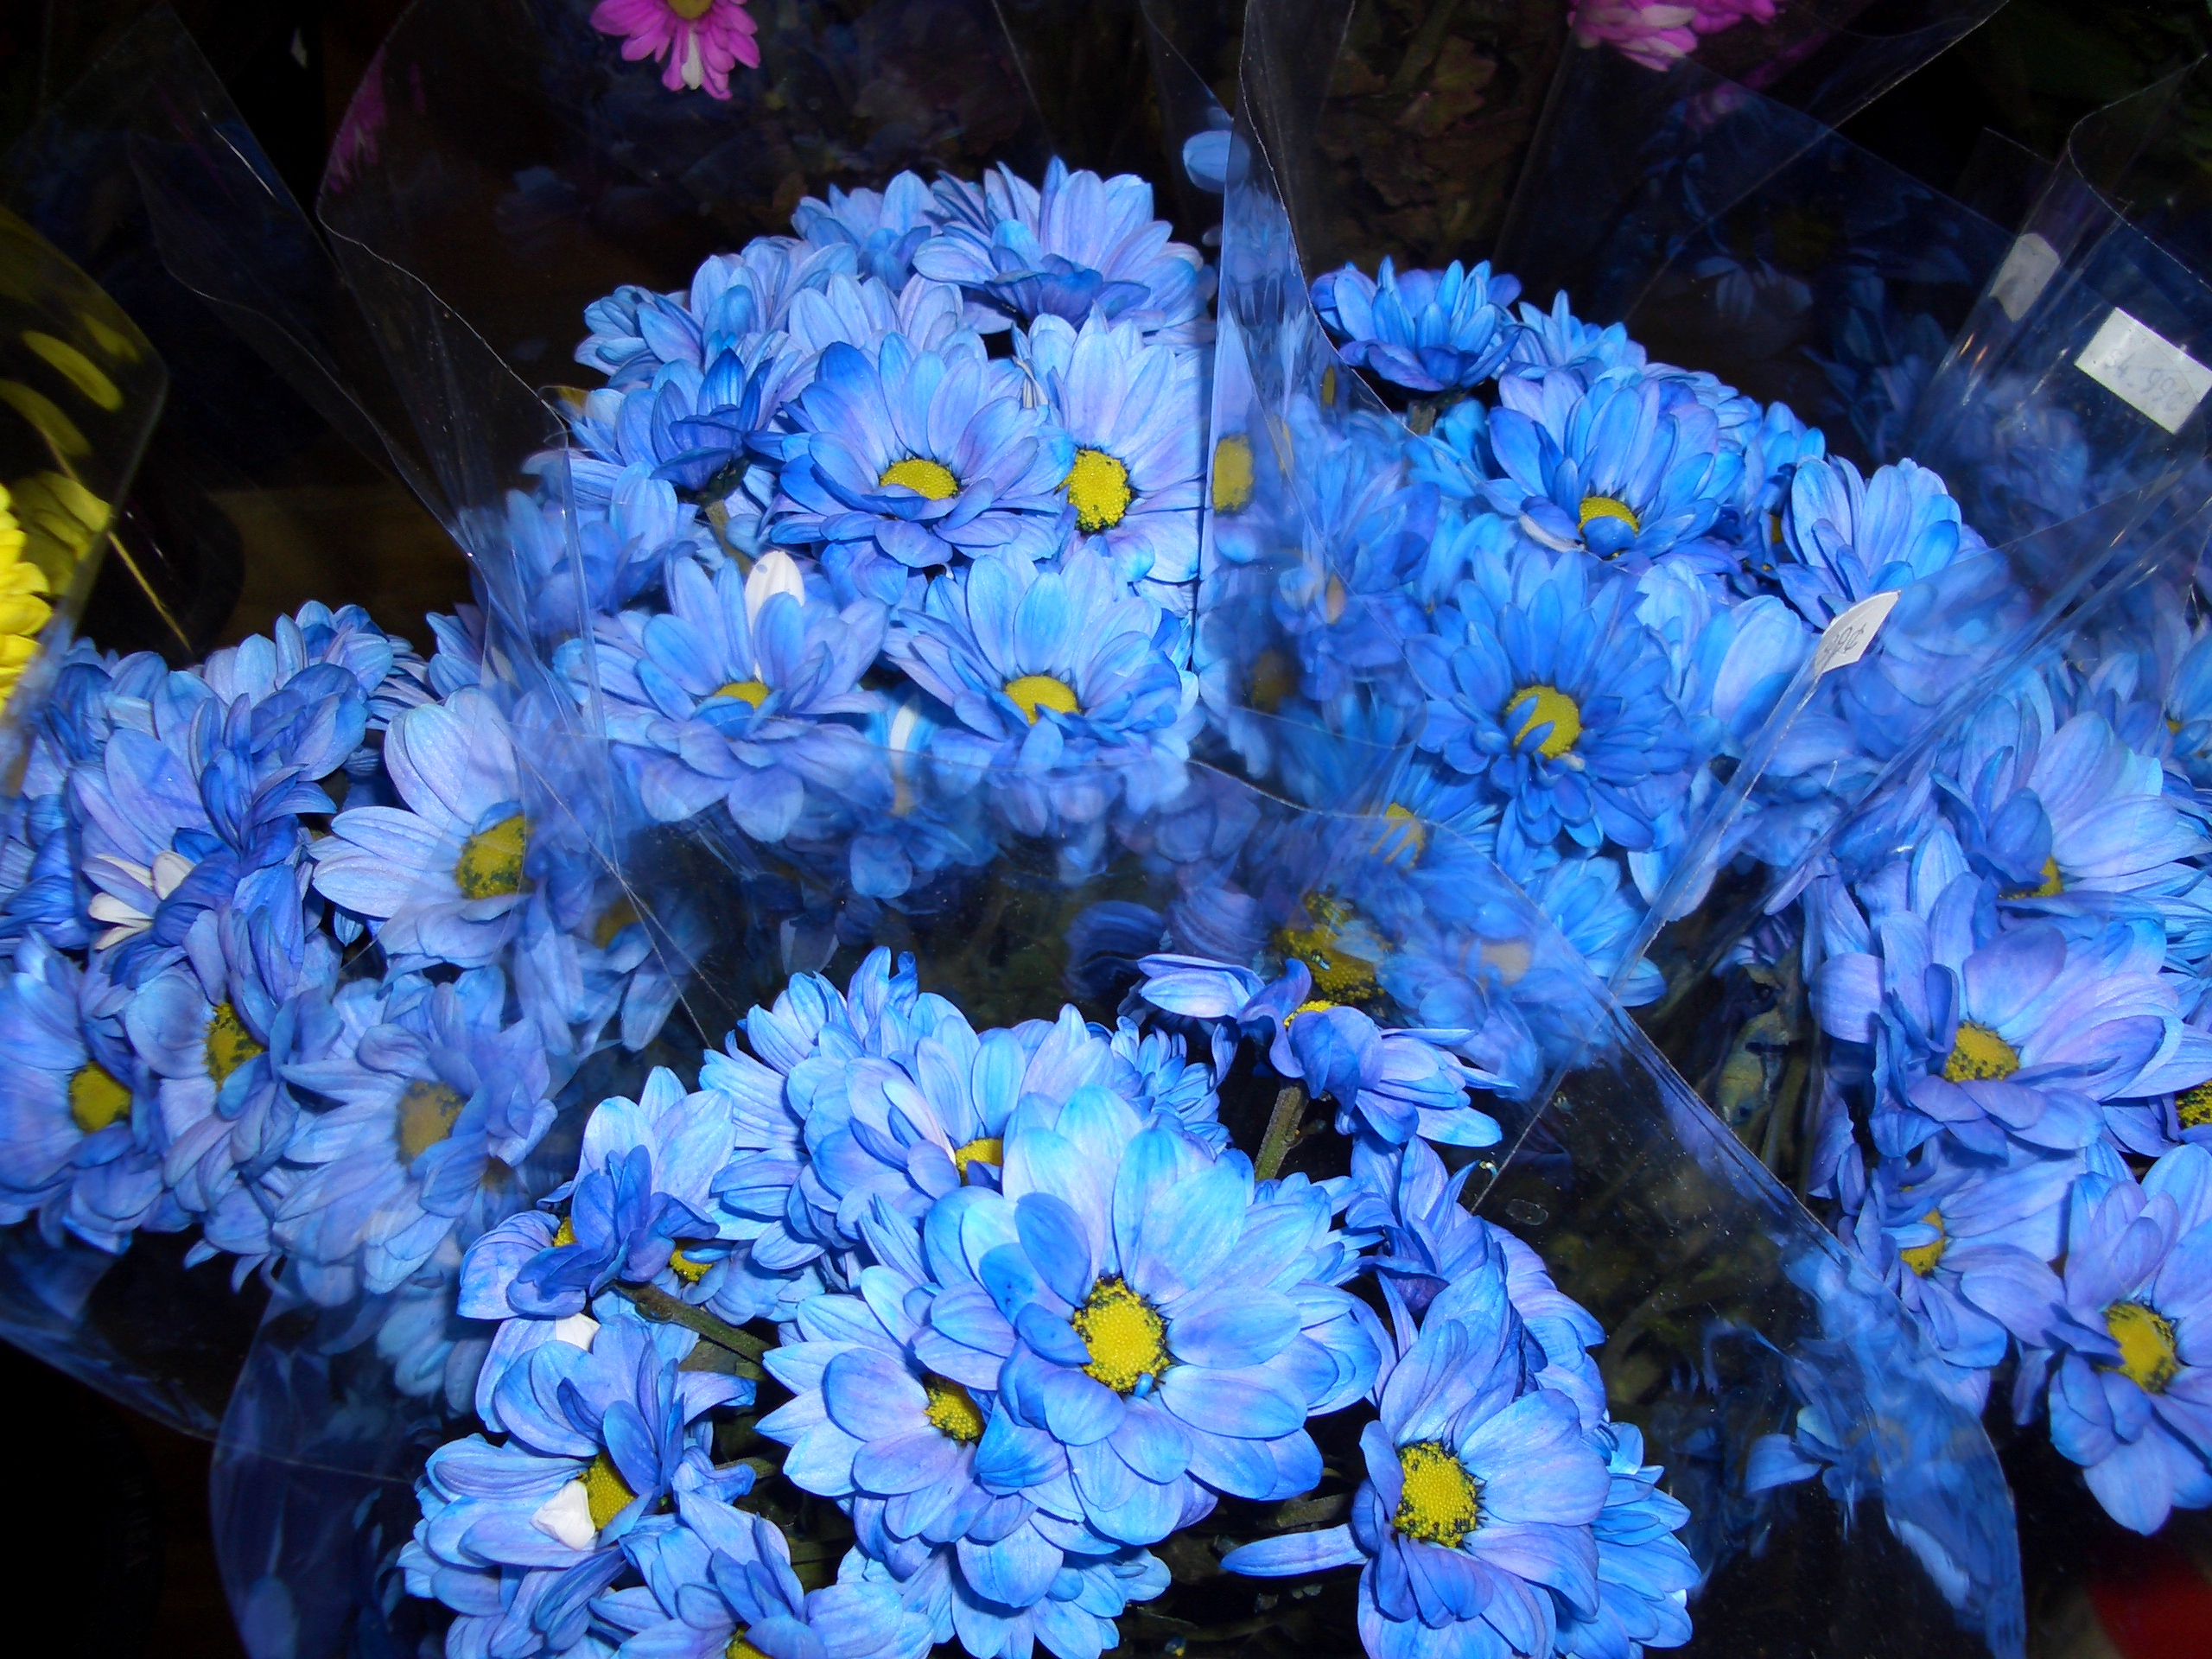 File:Blue Flowers.jpg